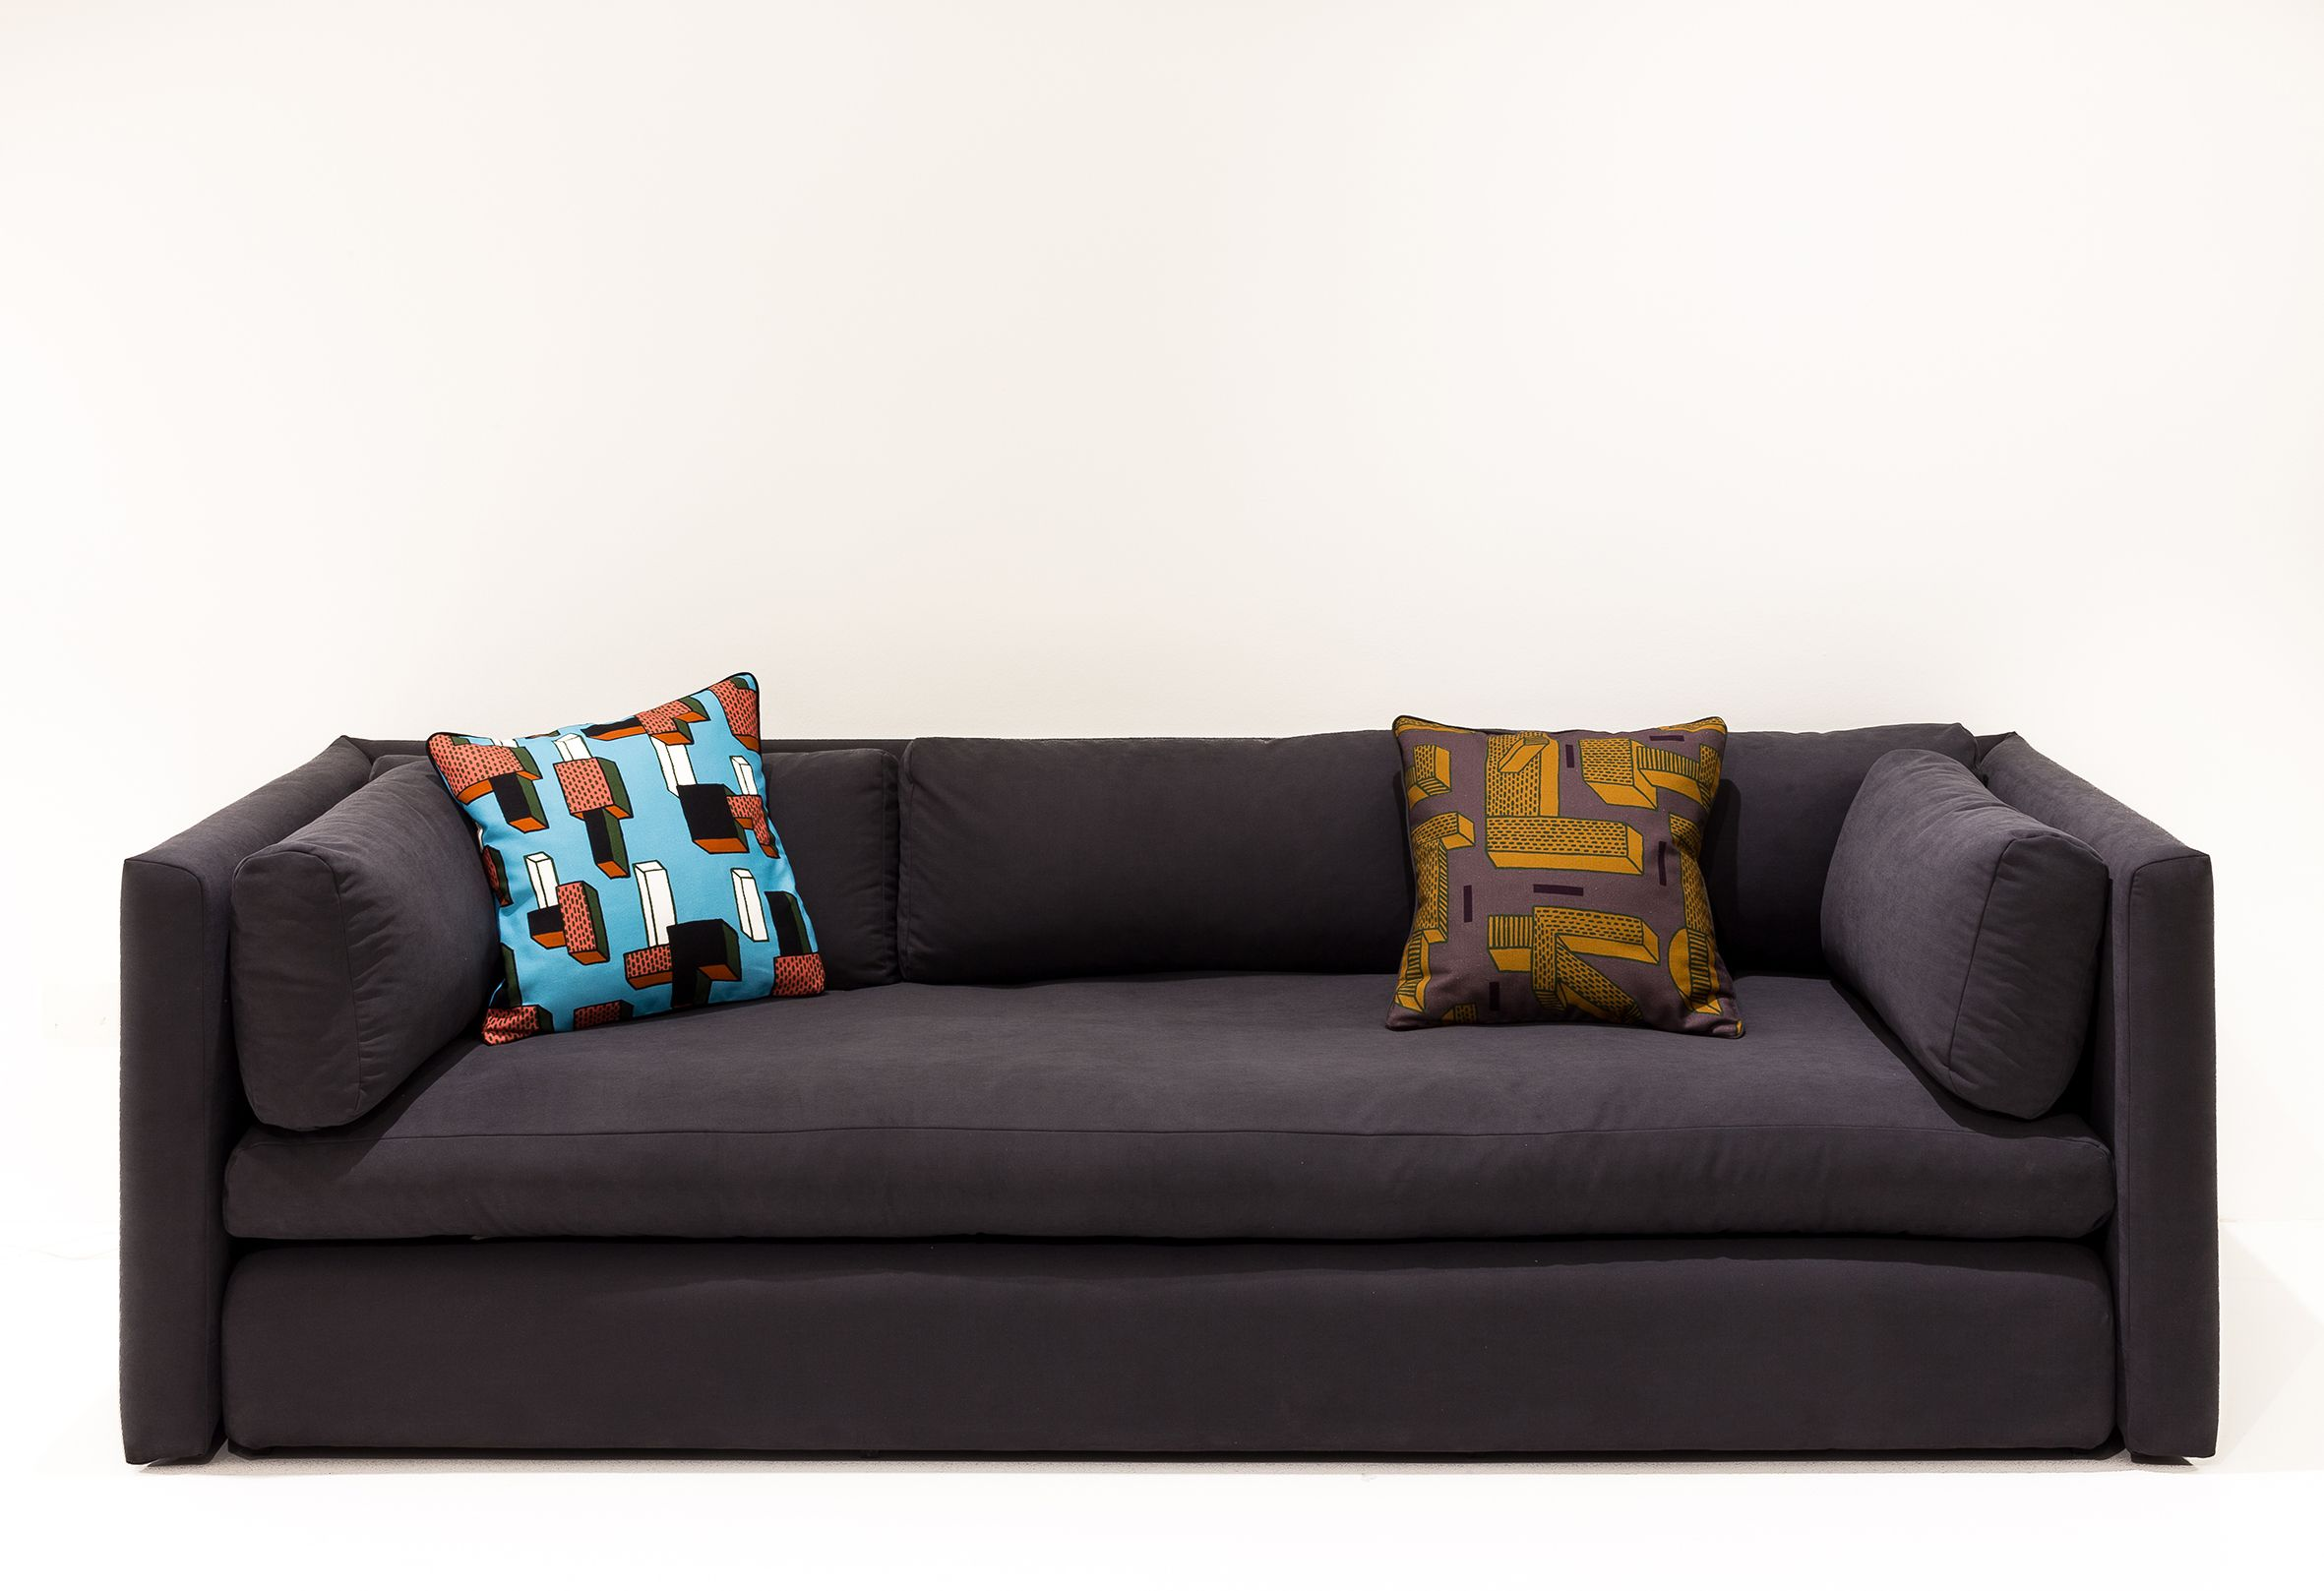 Hackney Sofa By Wrong For Hay Nathalie Du Pasquier Cushions For Wrong For Hay Seat